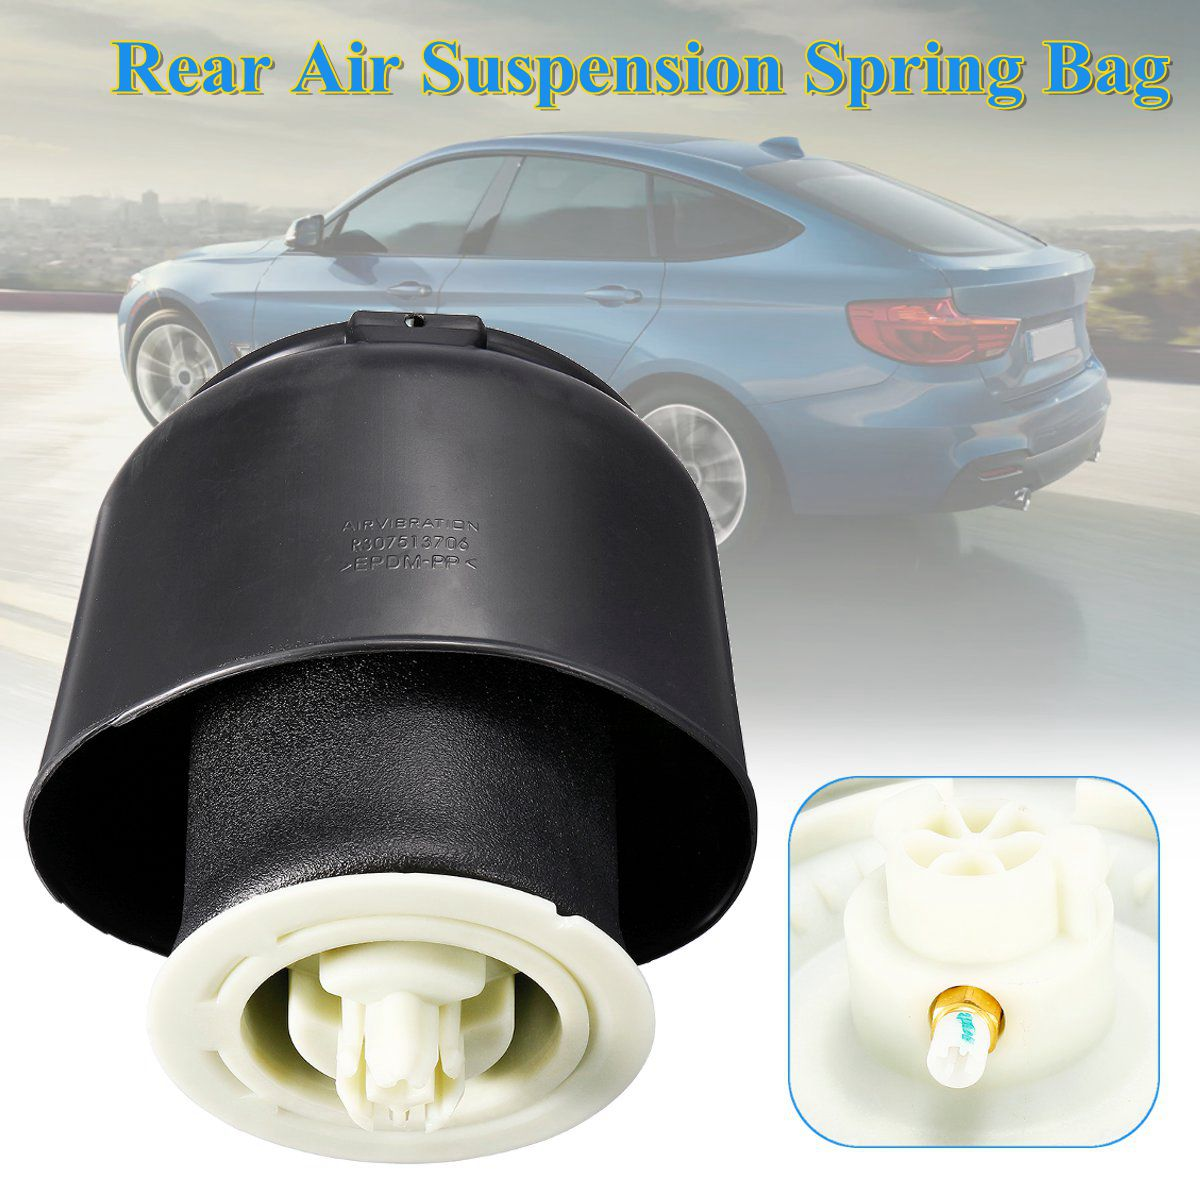 New Rear Air Suspension Spring Bellow Bag With Dust Cover Case For BMW F07 GT F10 F11 #37106781827 371067818 37106781828